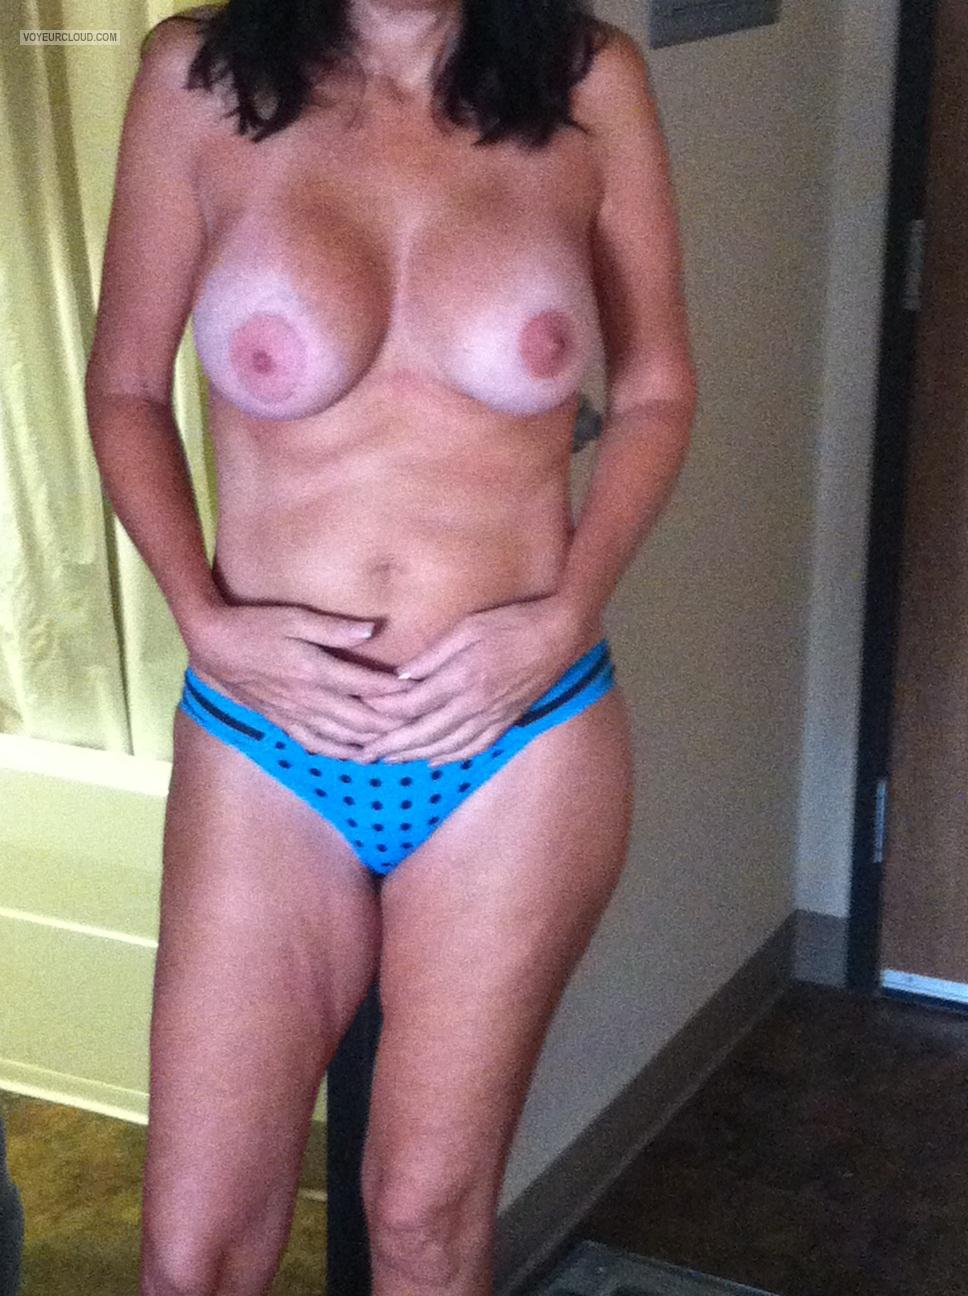 Tit Flash: Wife's Tanlined Very Big Tits - My Beautiful Baby from United States